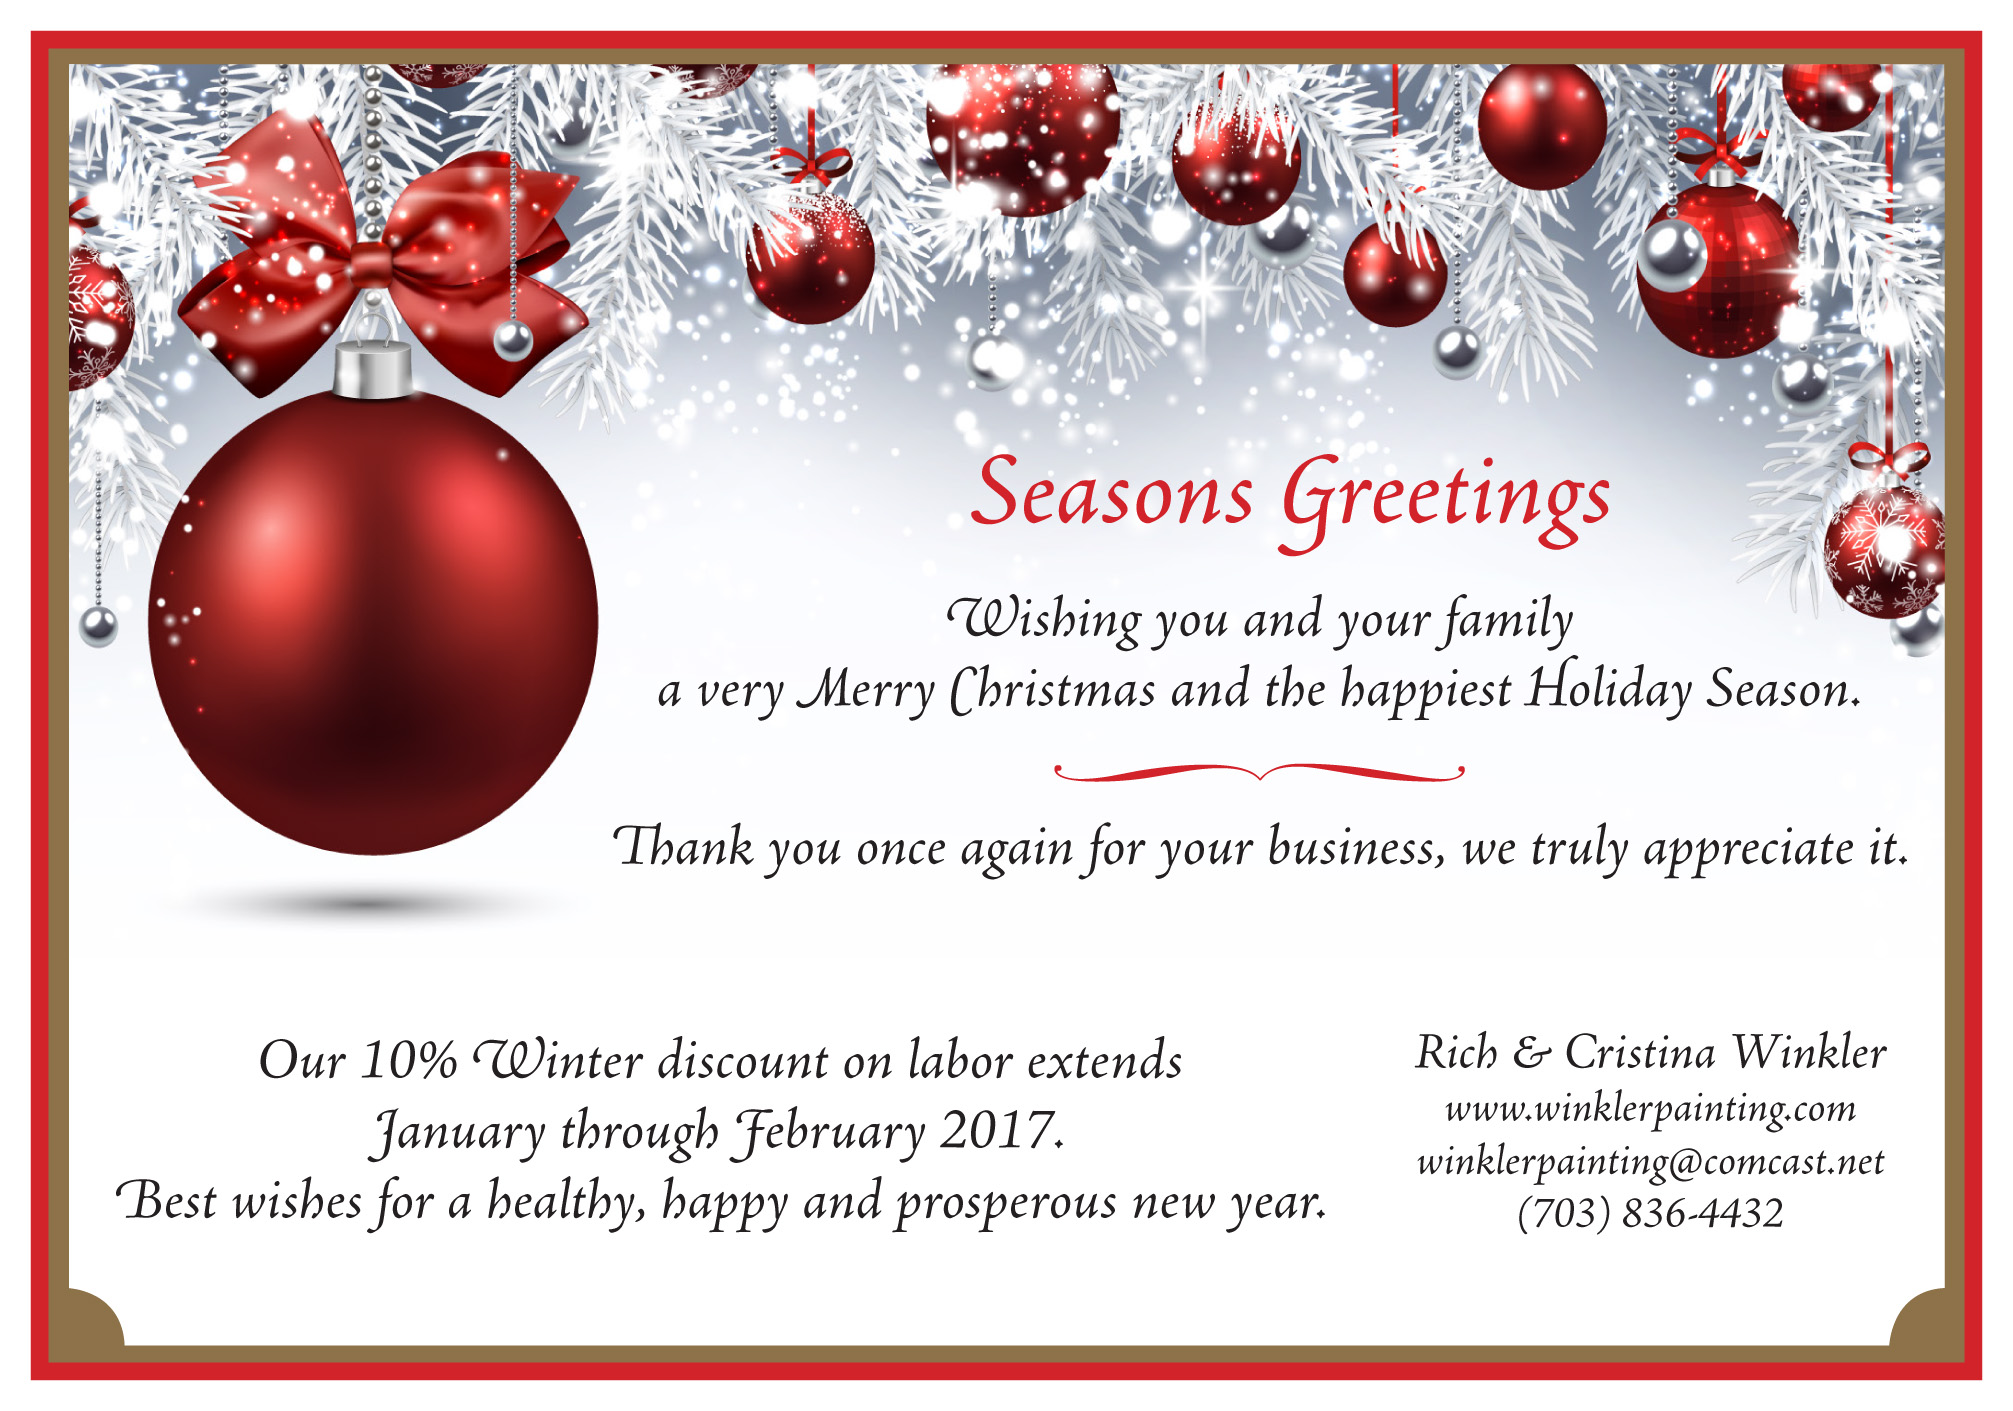 Seasons Greetings And Discounts Rich Winkler Painting